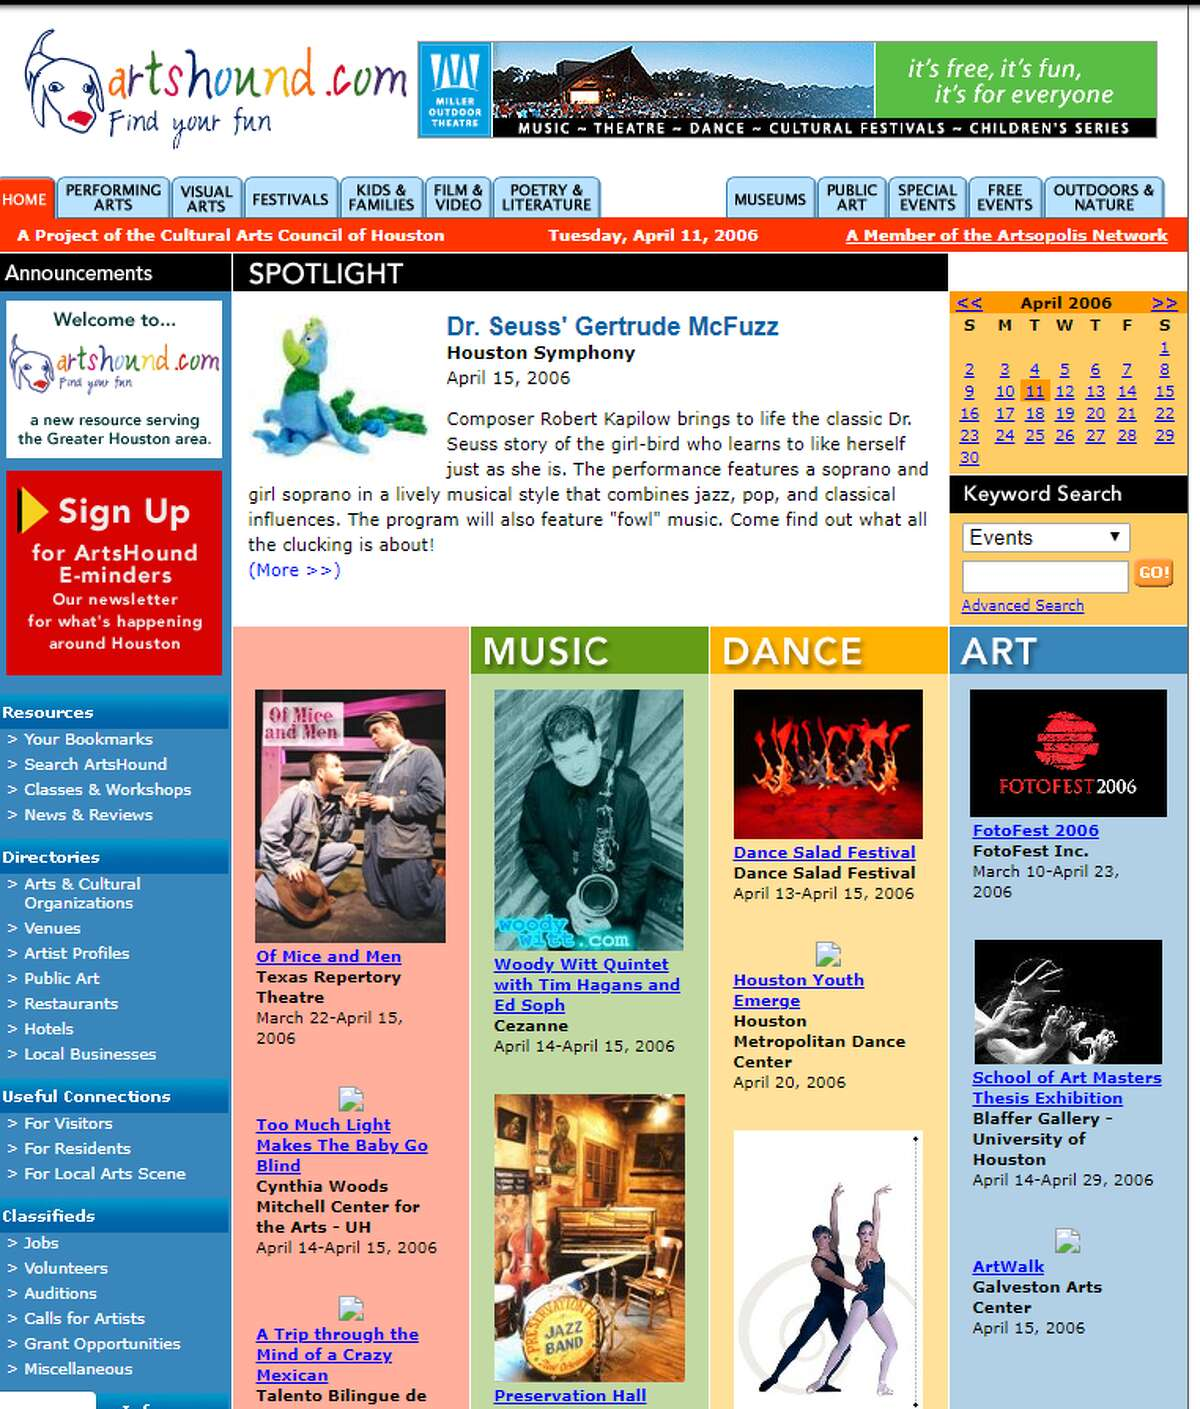 """Houston Arts Hound Website: www.Artshound.com Screen capture date: April 11, 2006 """"Arts Hound is the leading online resource for Arts and Cultural information for the Houston / Harris County region. It offers the largest database of Houston / Harris County Arts and Cultural events, as well as additional listings of classes and workshops, jobs, auditions, organizations, venues, public art, and individual artists. The Web site first launched to the public in December 2005."""""""